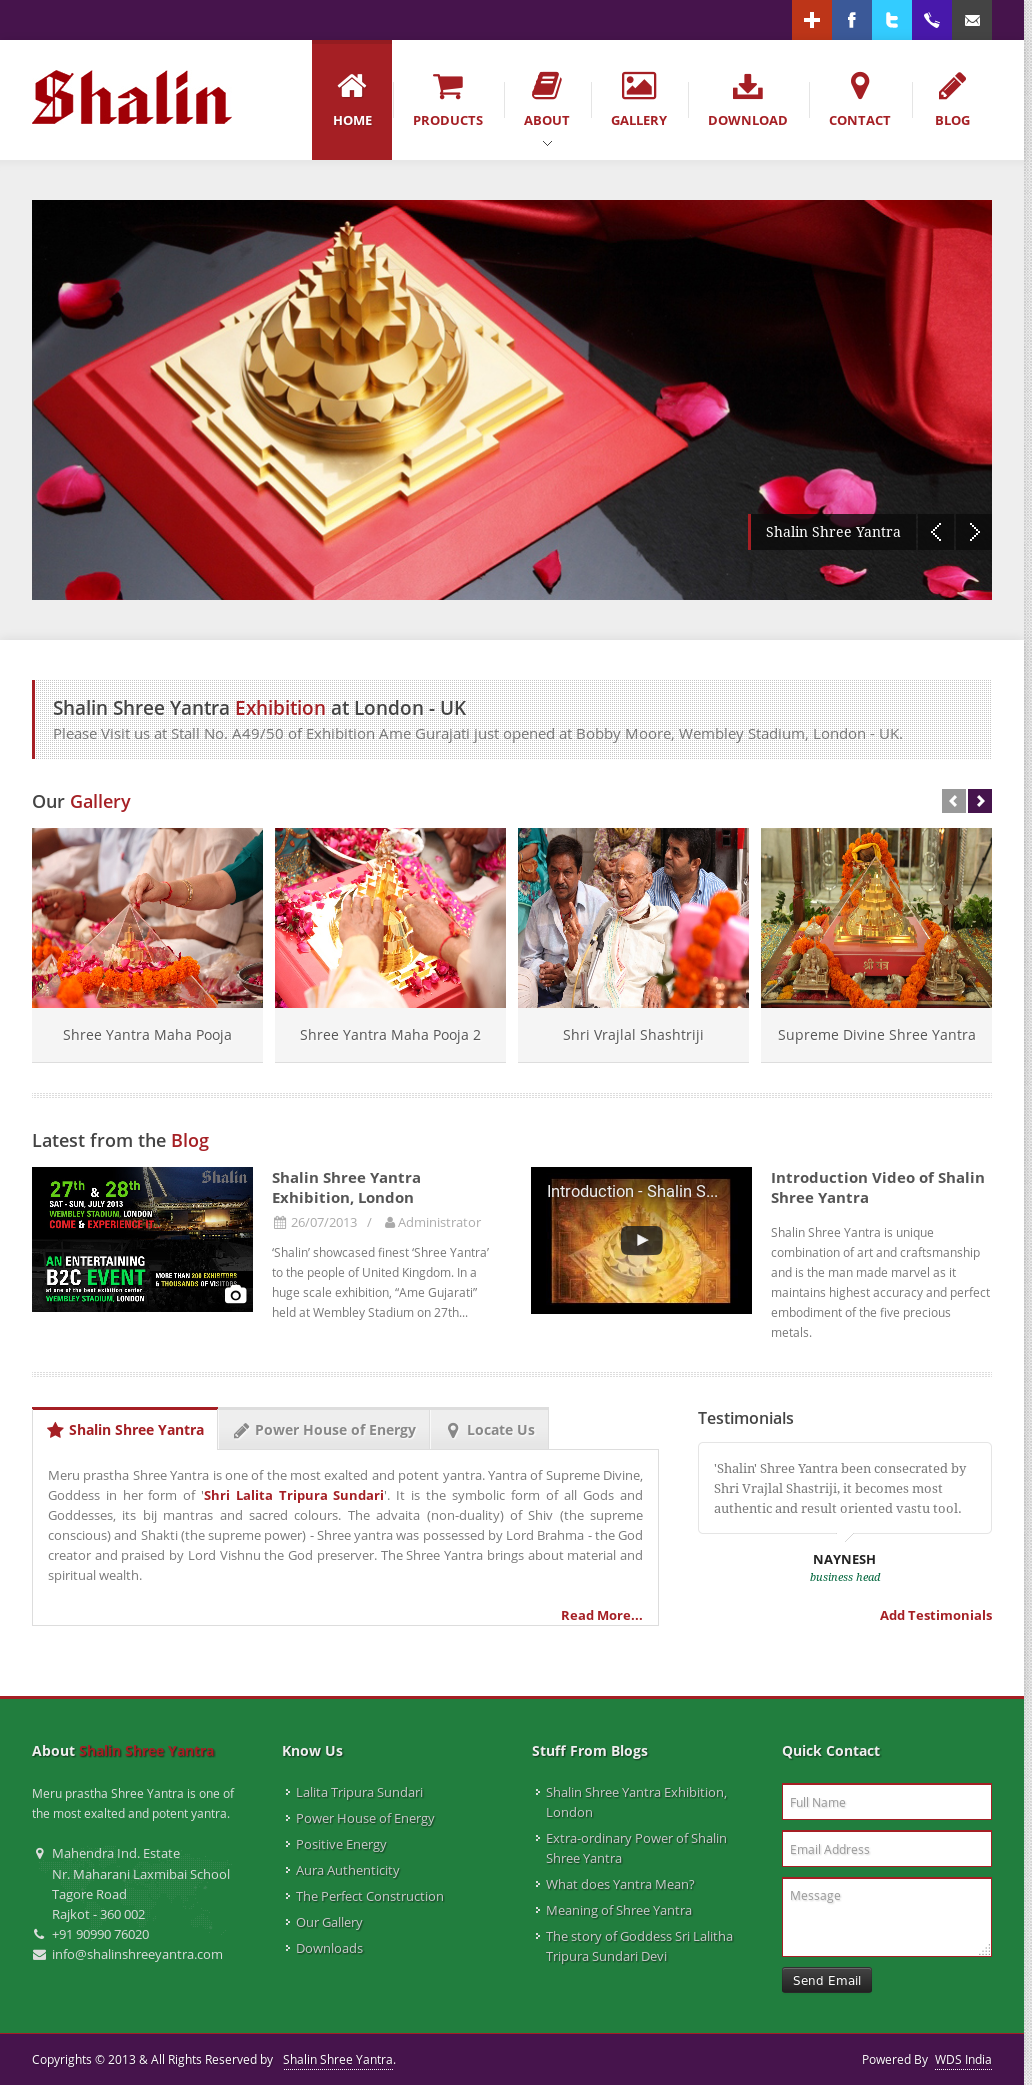 Shalin Shree Yantra Competitors, Revenue and Employees